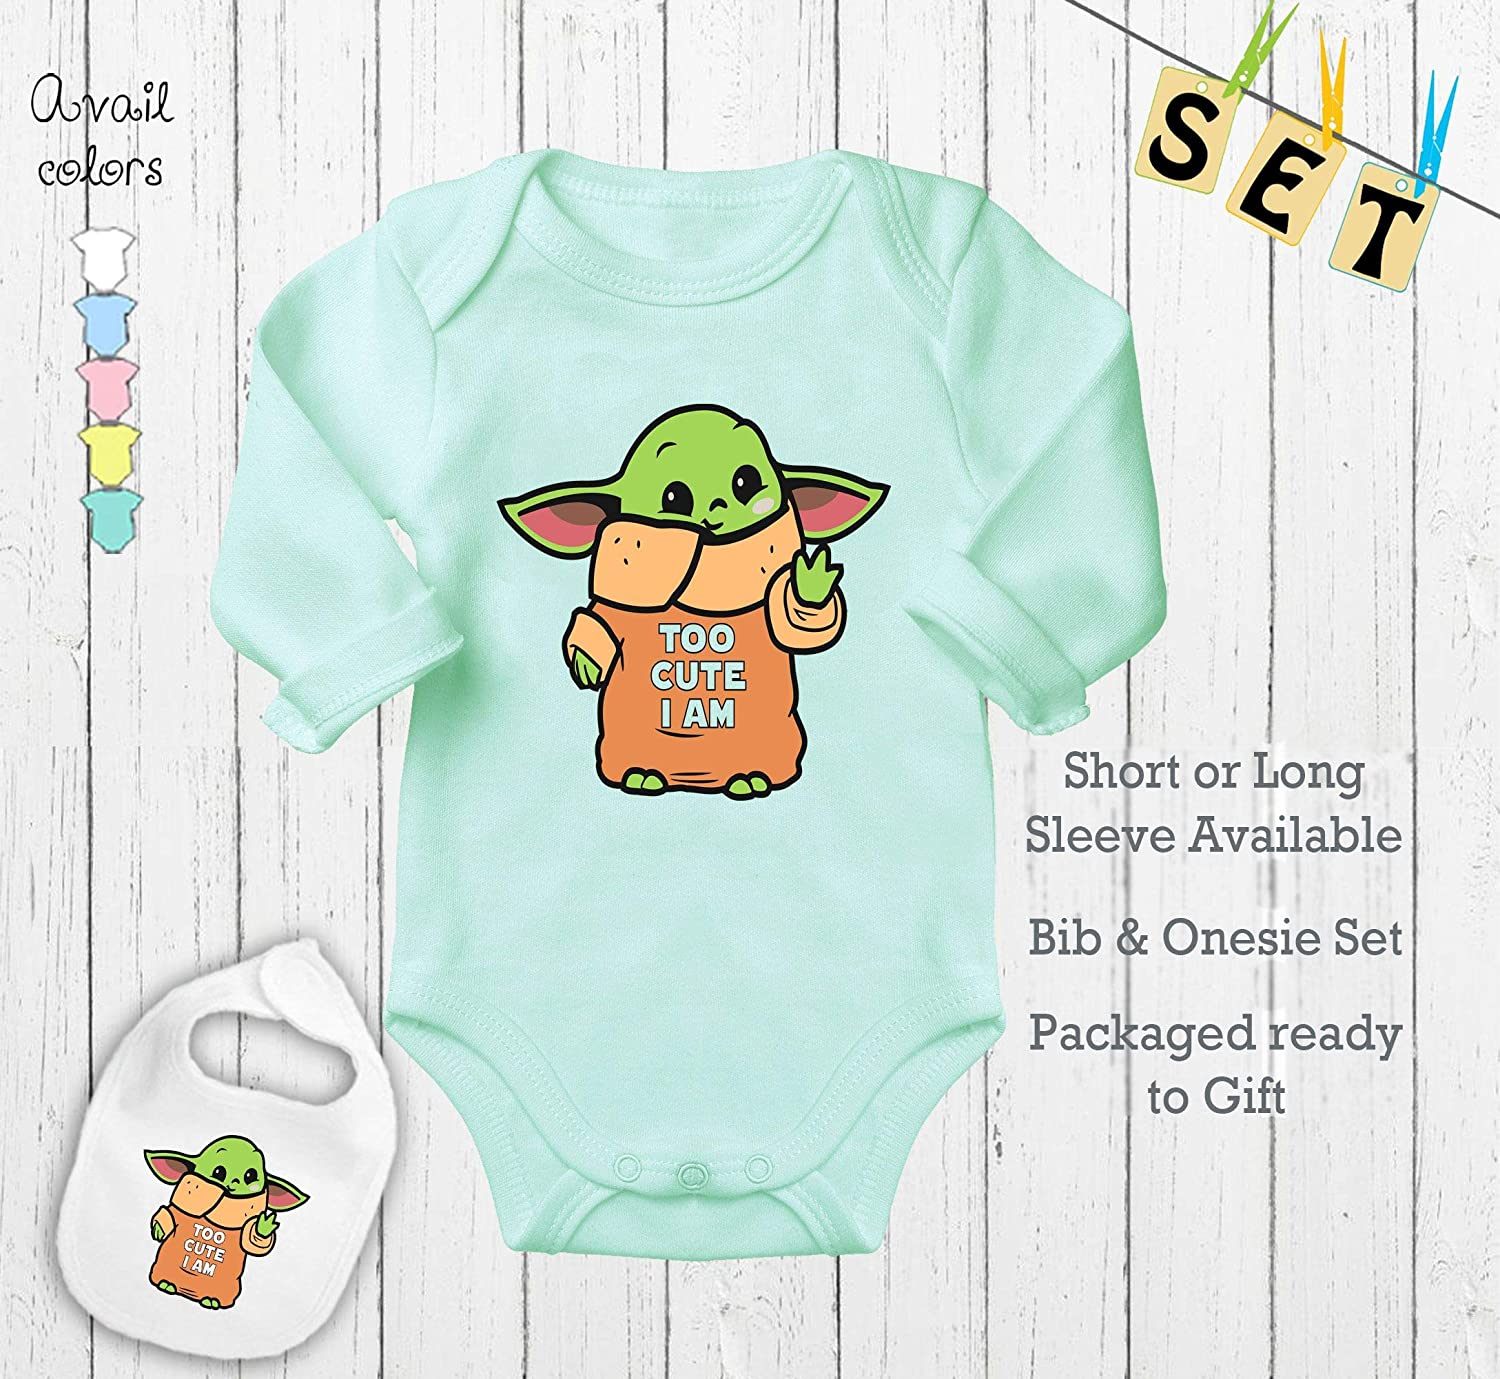 We/'re Home One Piece Baby Romper Han Solo Star Wars Cool Cute Fun Geeky Chewie